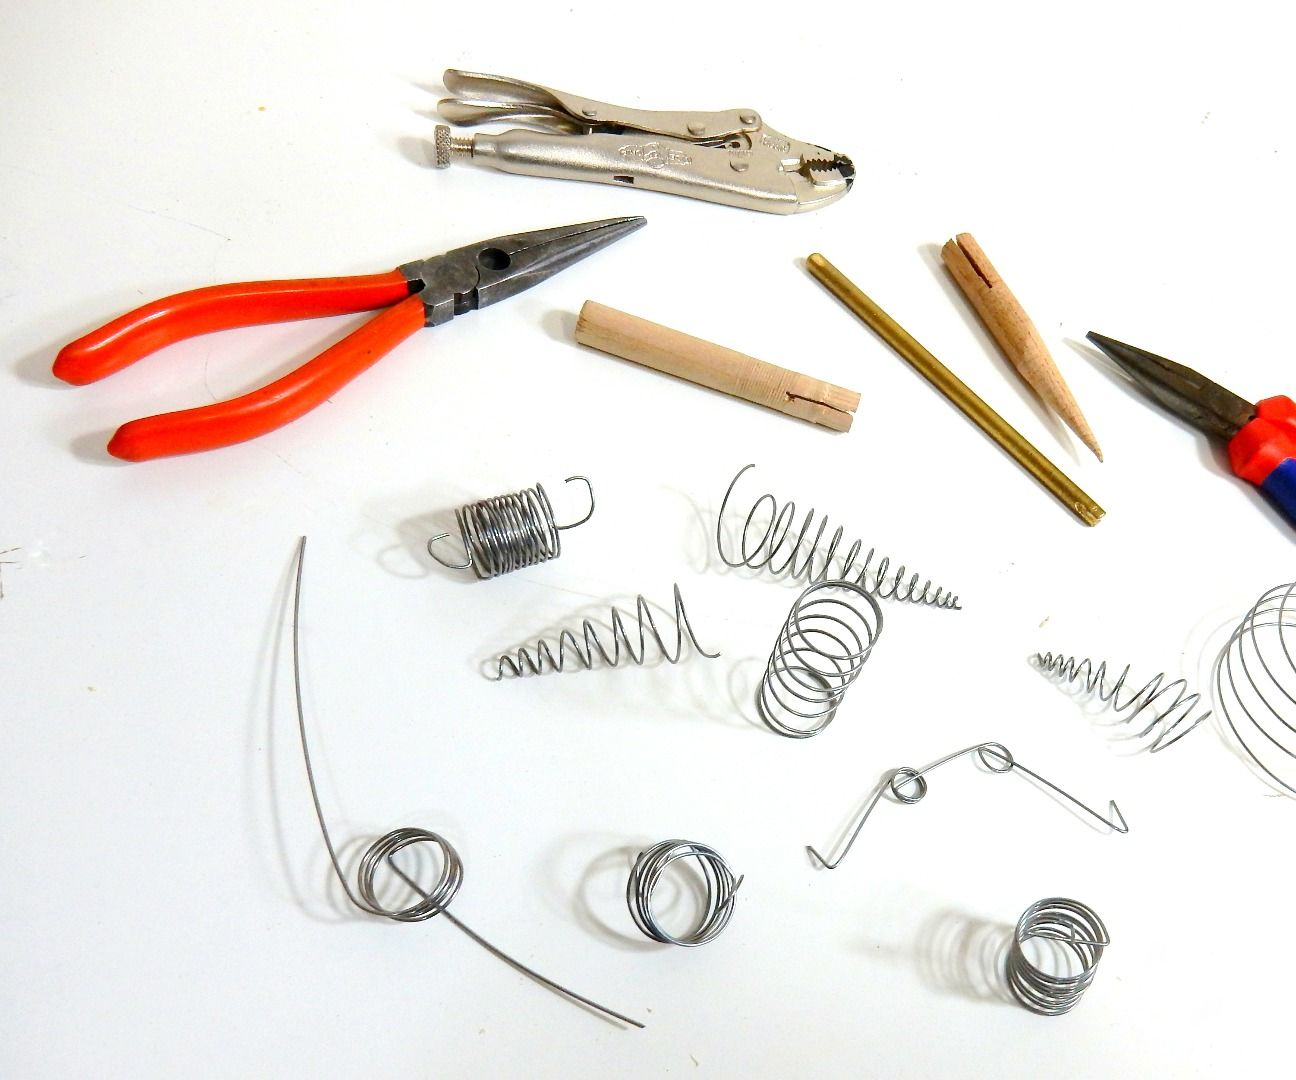 How to make springs